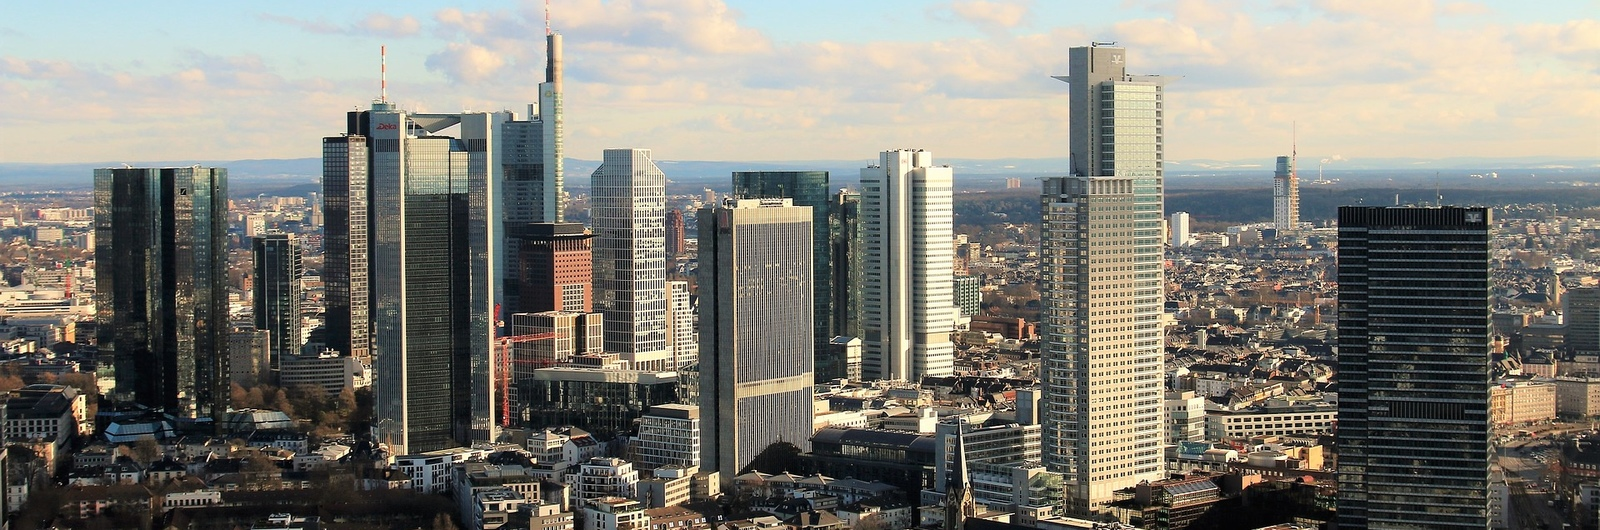 frankfurtammain city header